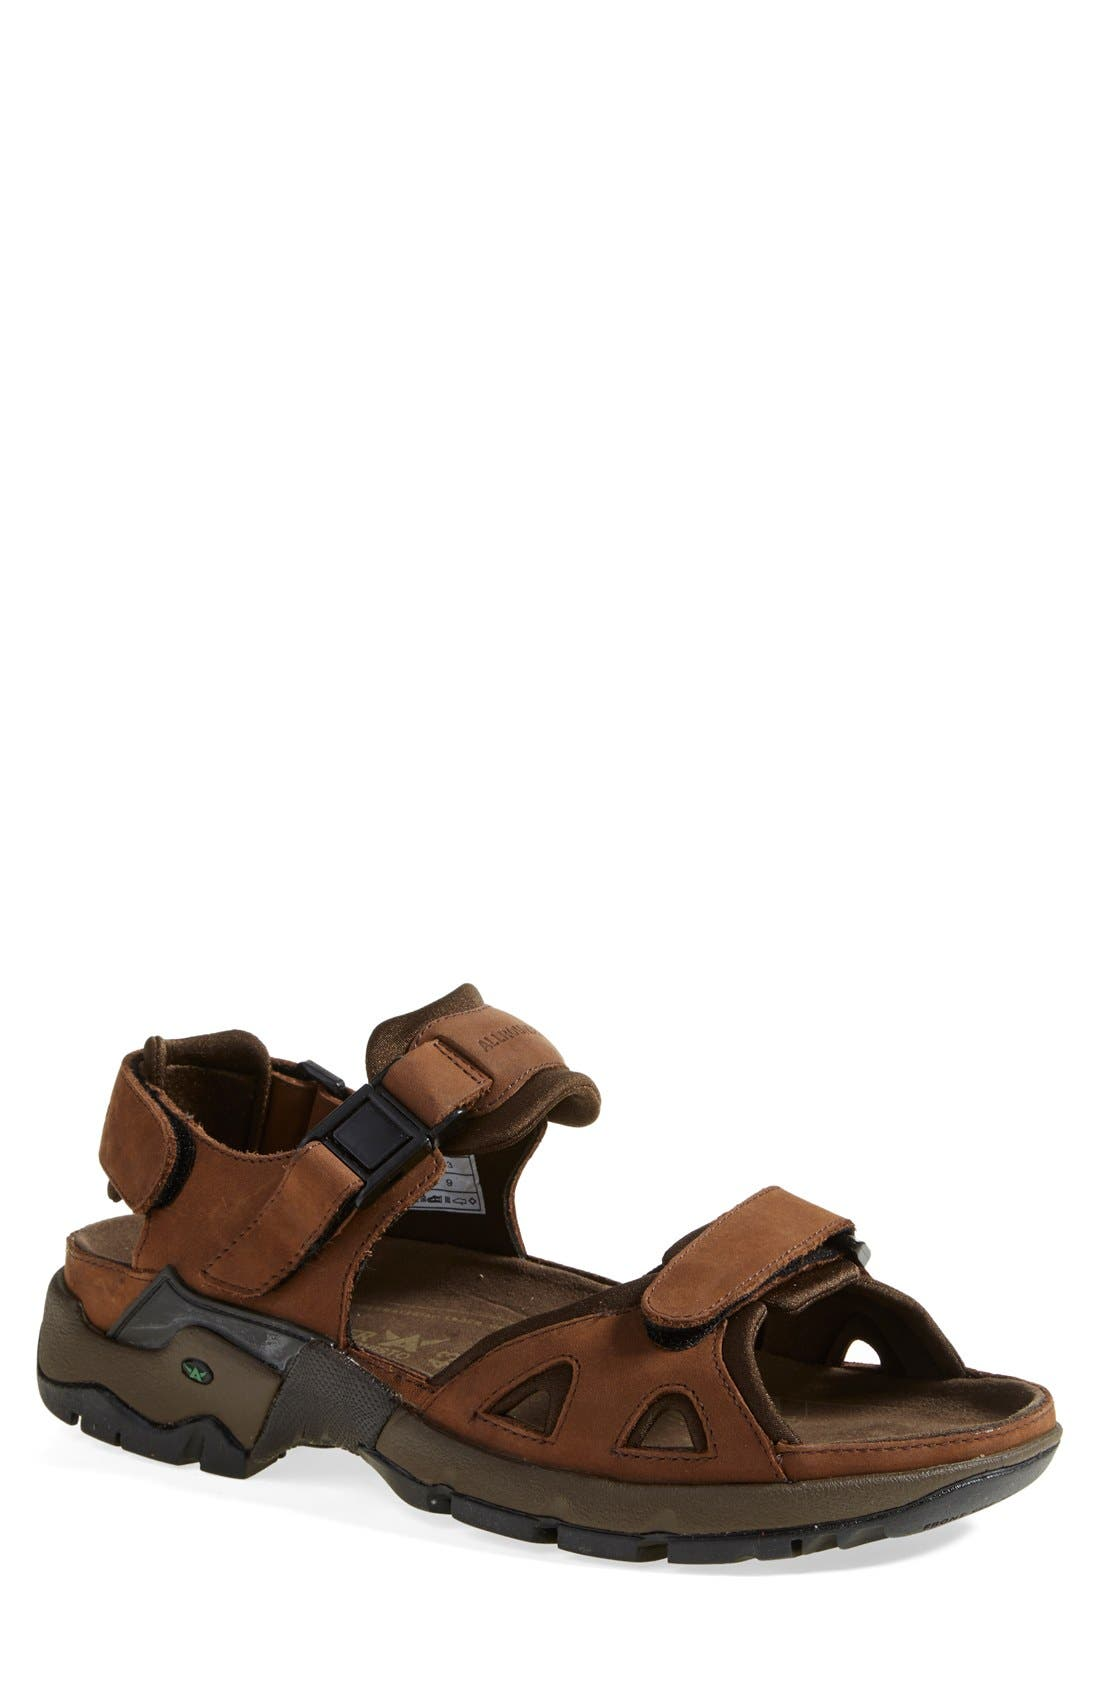 Allrounder by Mephisto 'Alligator' Sandal,                             Main thumbnail 1, color,                             Brown